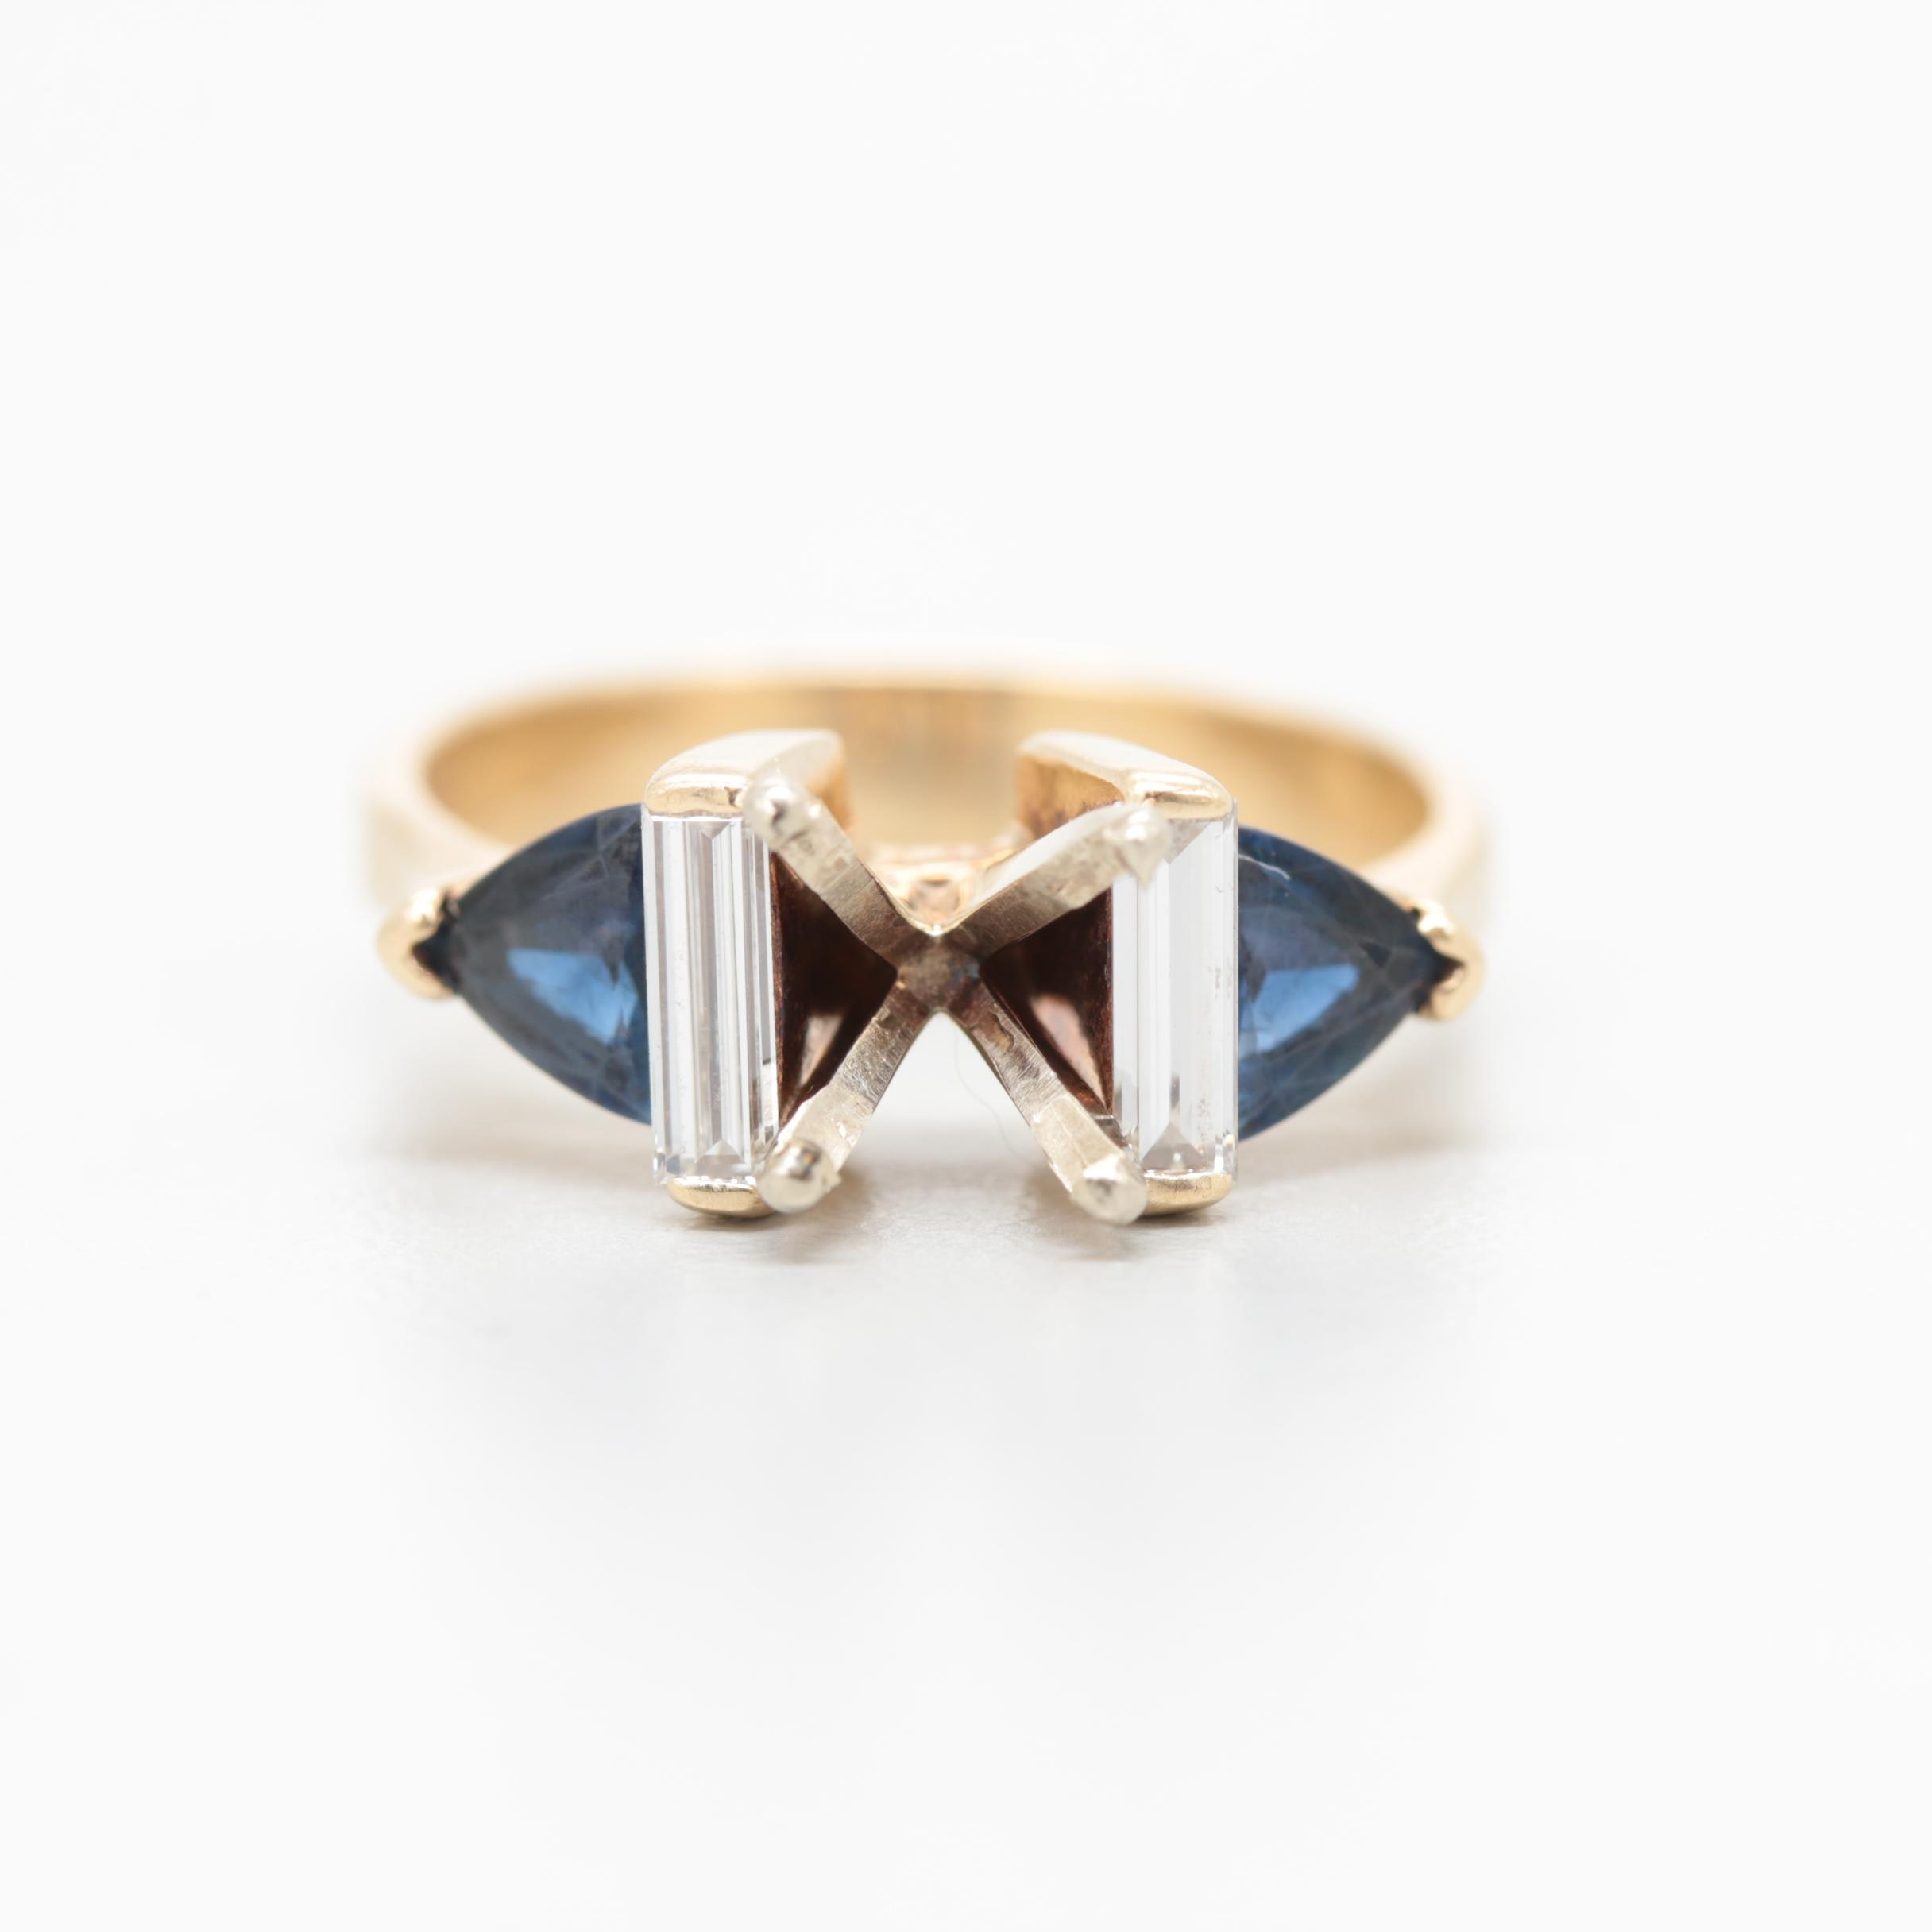 14K Yellow Gold Semi-Mount Ring with Sapphire and Diamonds